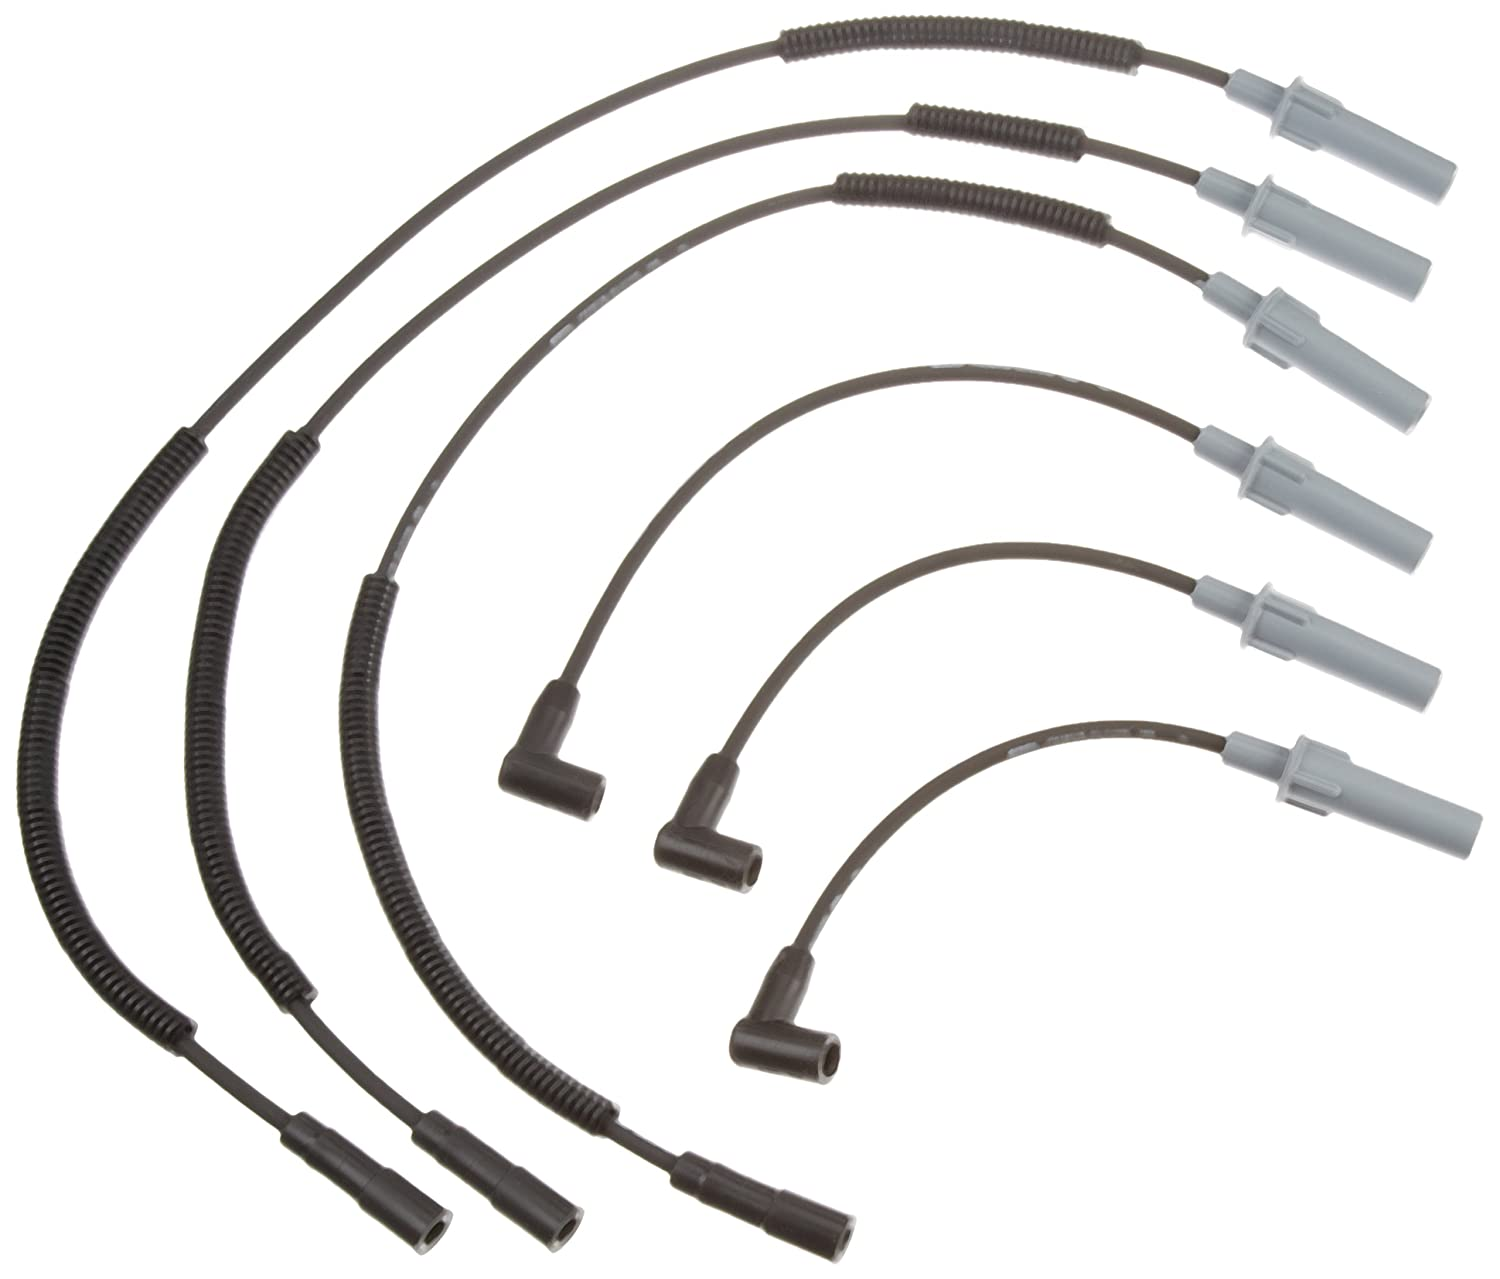 ACDelco 9466H Professional Spark Plug Wire Set